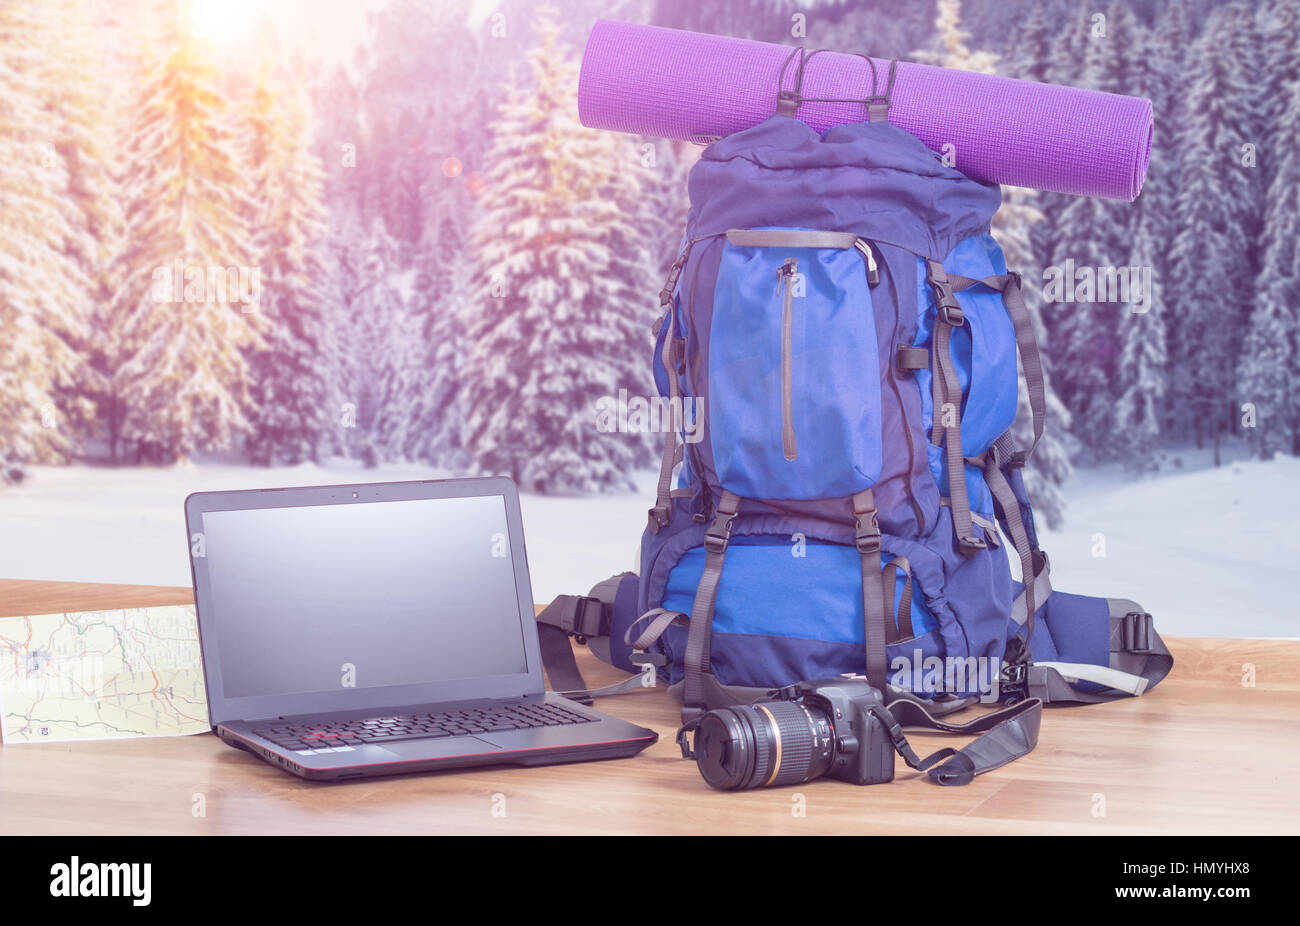 backpack laptop and camera with winter background - Stock Image